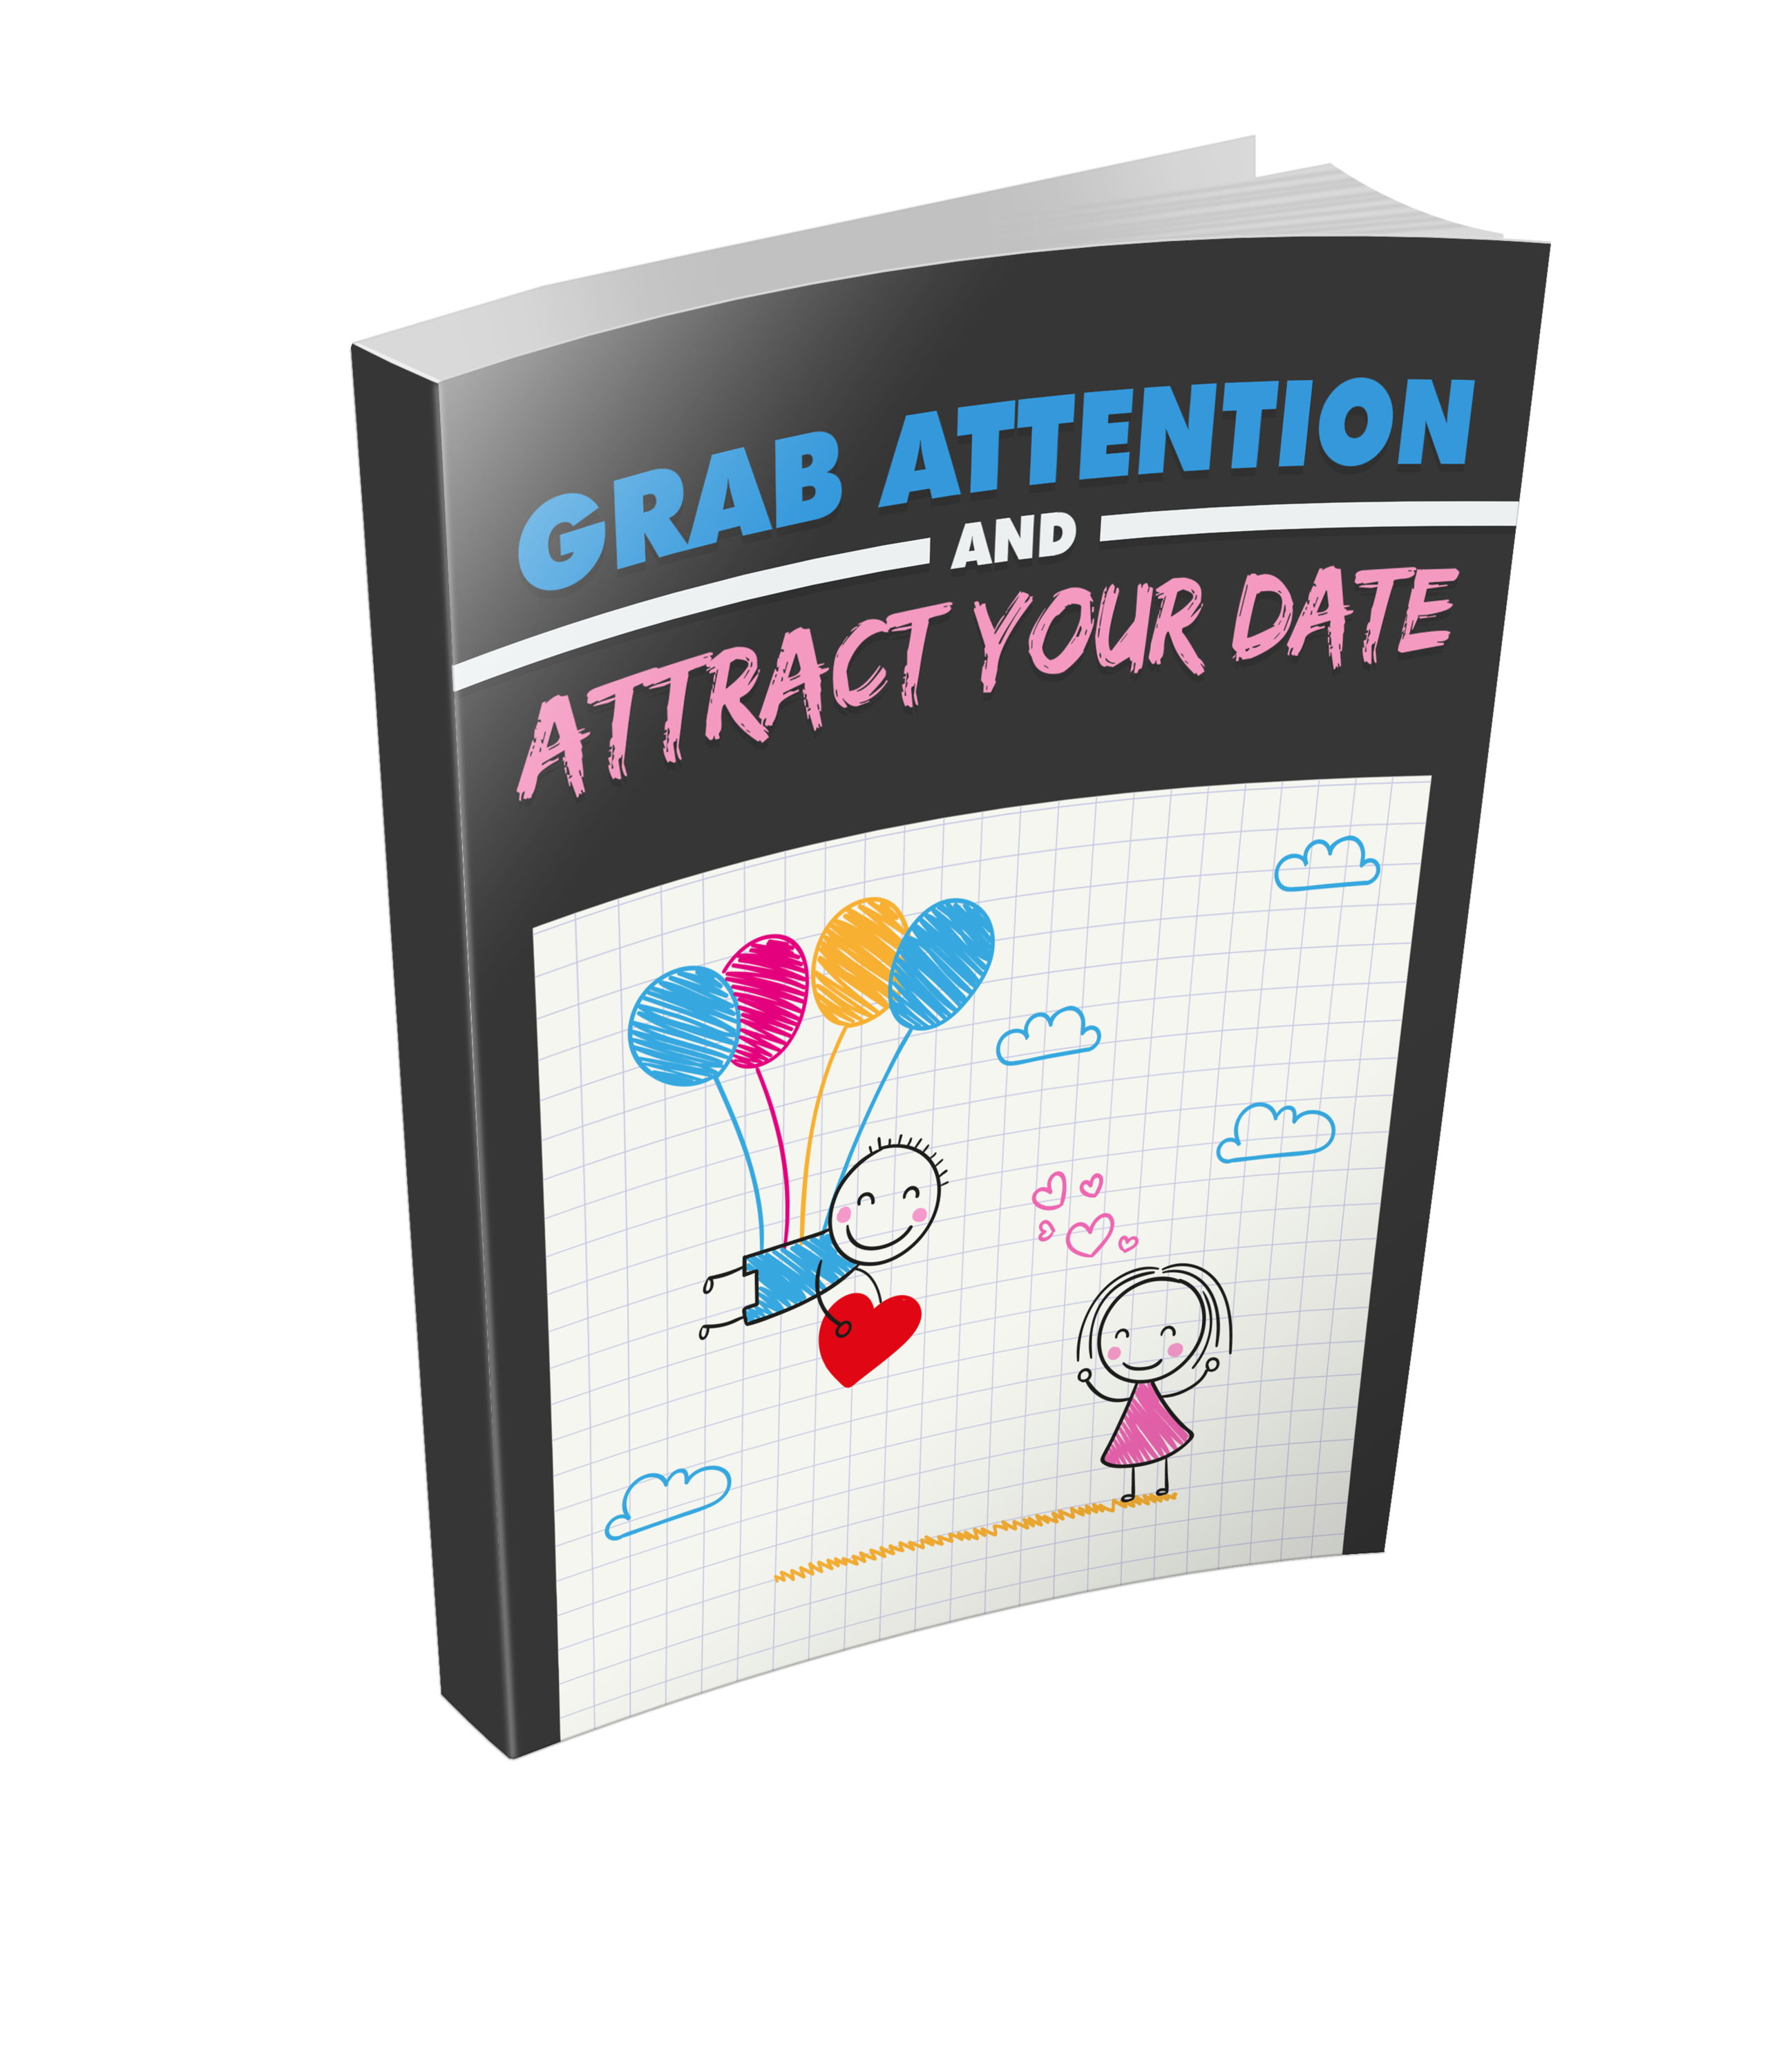 Grab Attention & Attract Your DAte